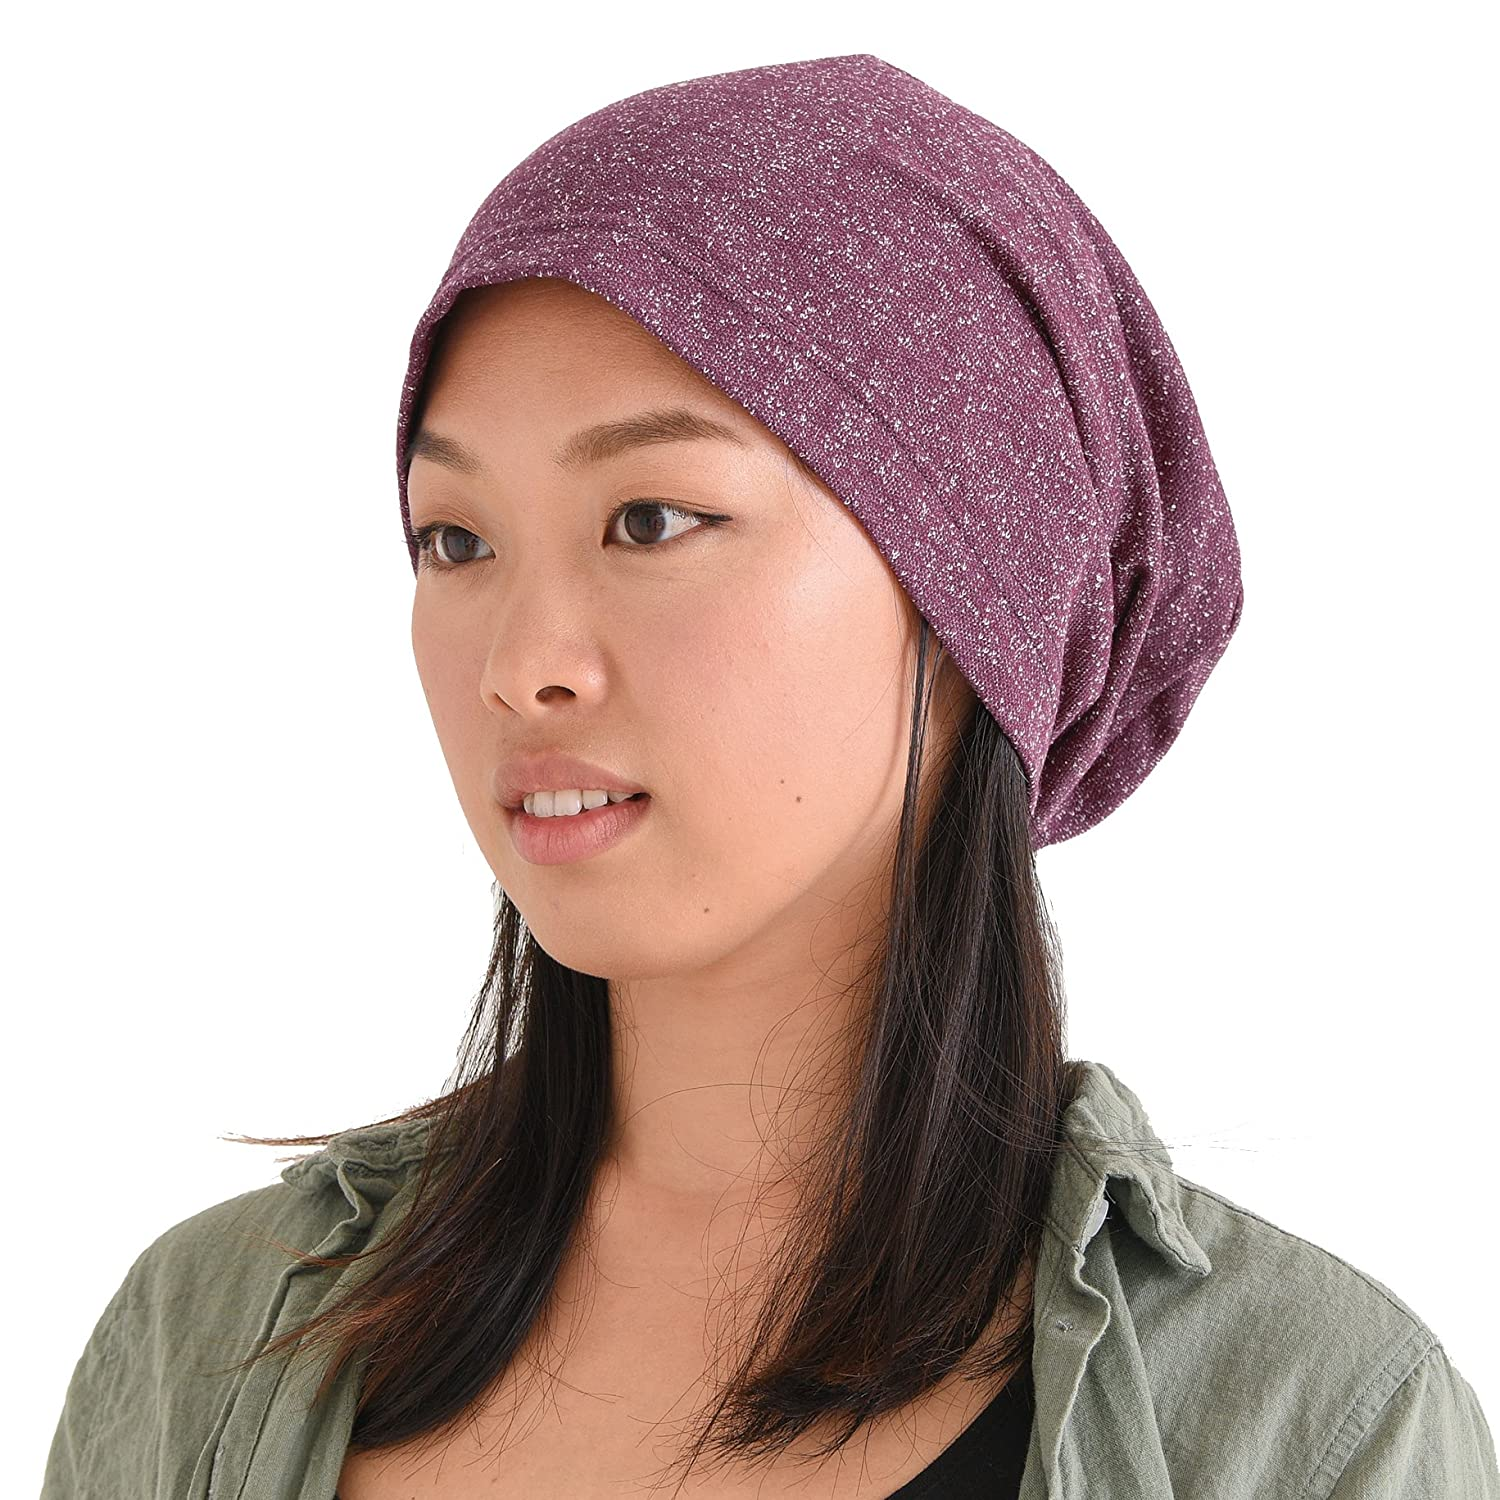 CHARM Casualbox | Oversized Beanie Hat - Super Slouchy - Big Slouch Baggy Men Women 4589777966765